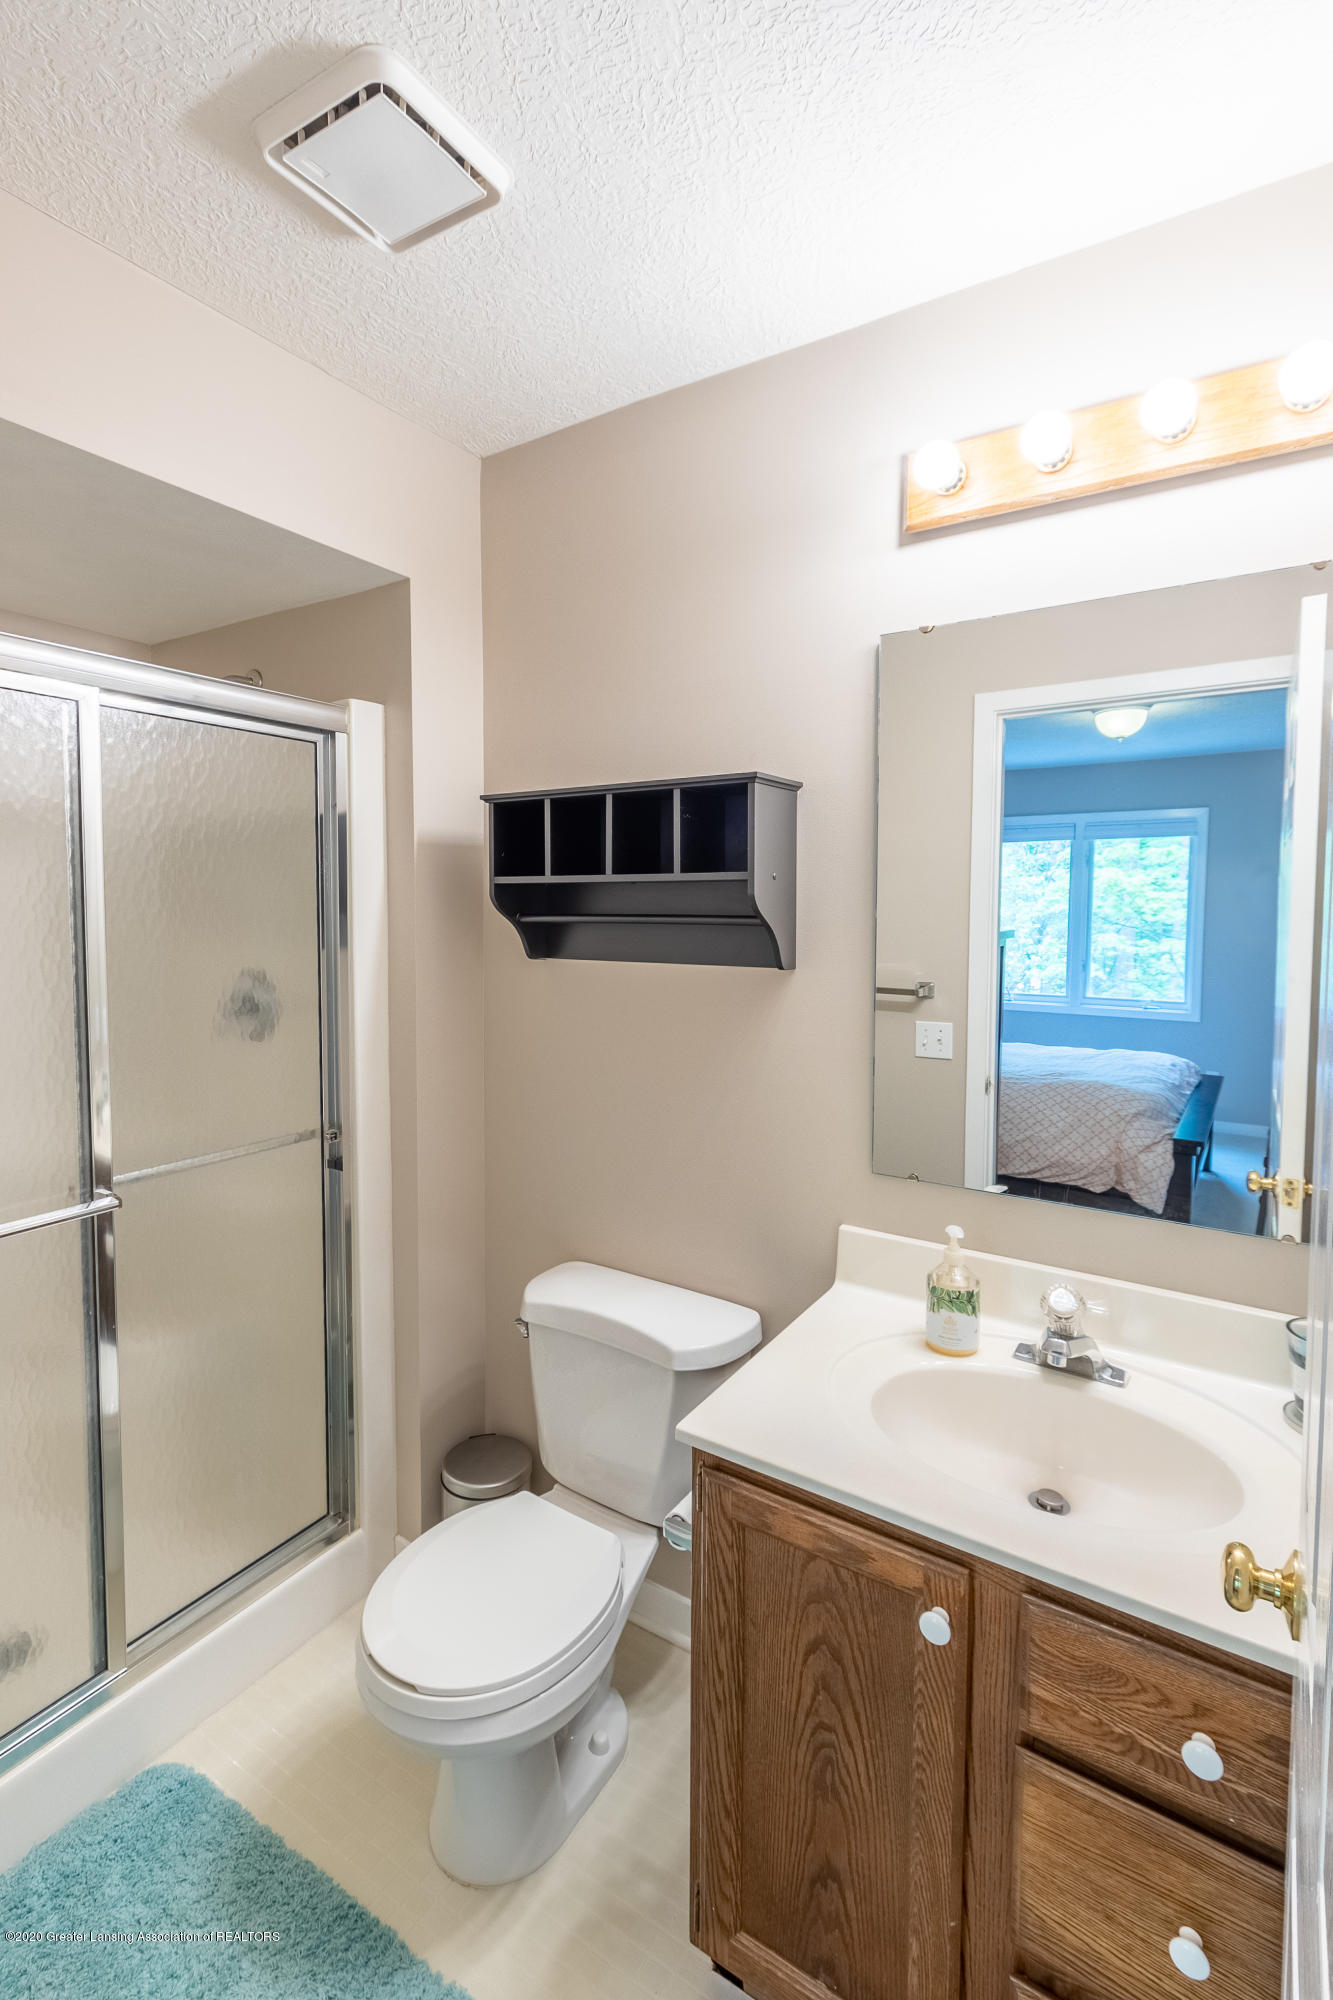 3668 Fairhills Dr - Full Bathroom in Bedroom 4 - 67